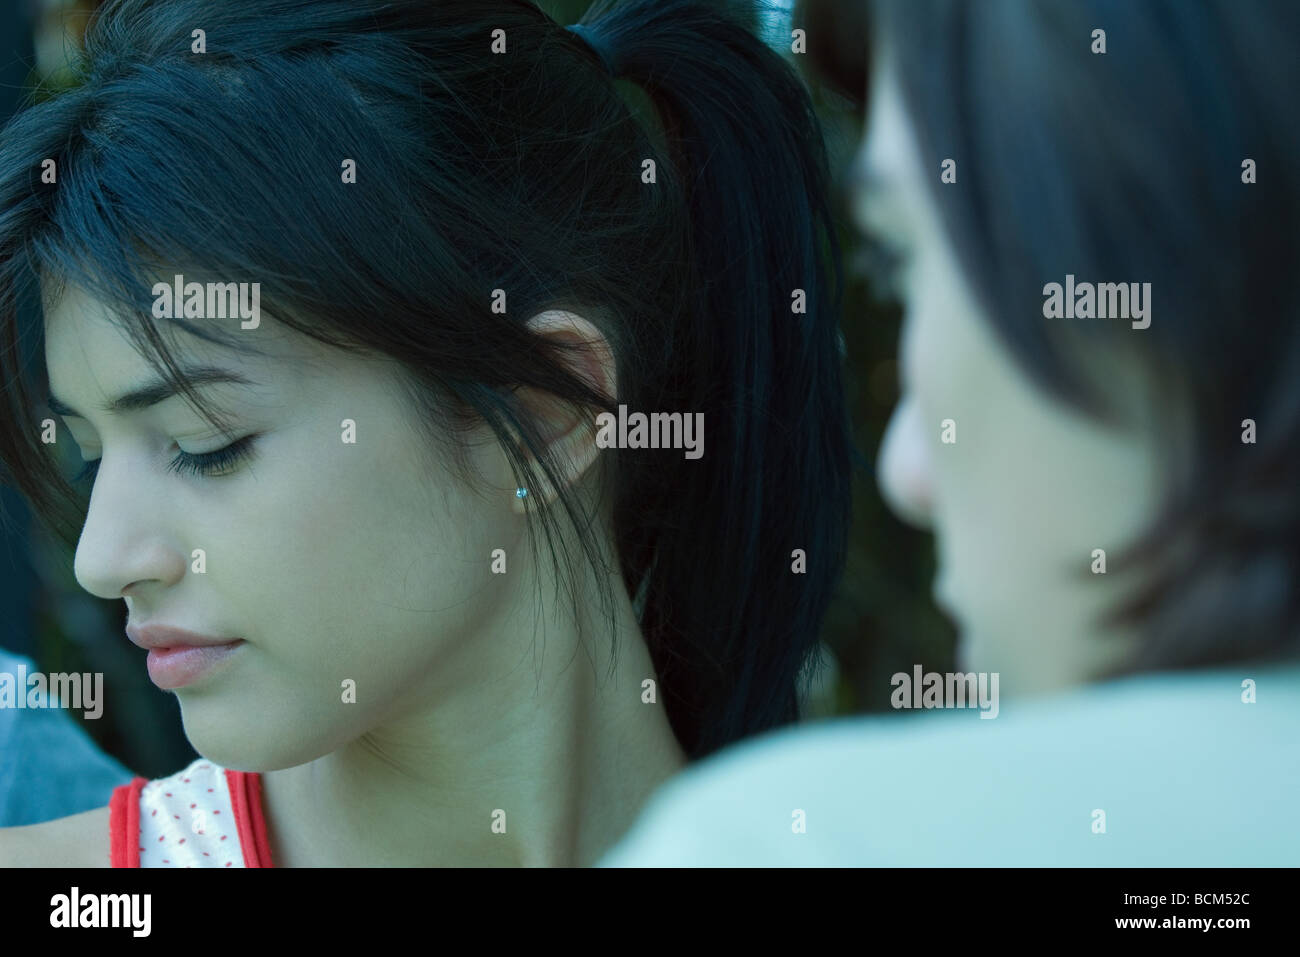 Young woman turning head away from teen boy, cropped view - Stock Image